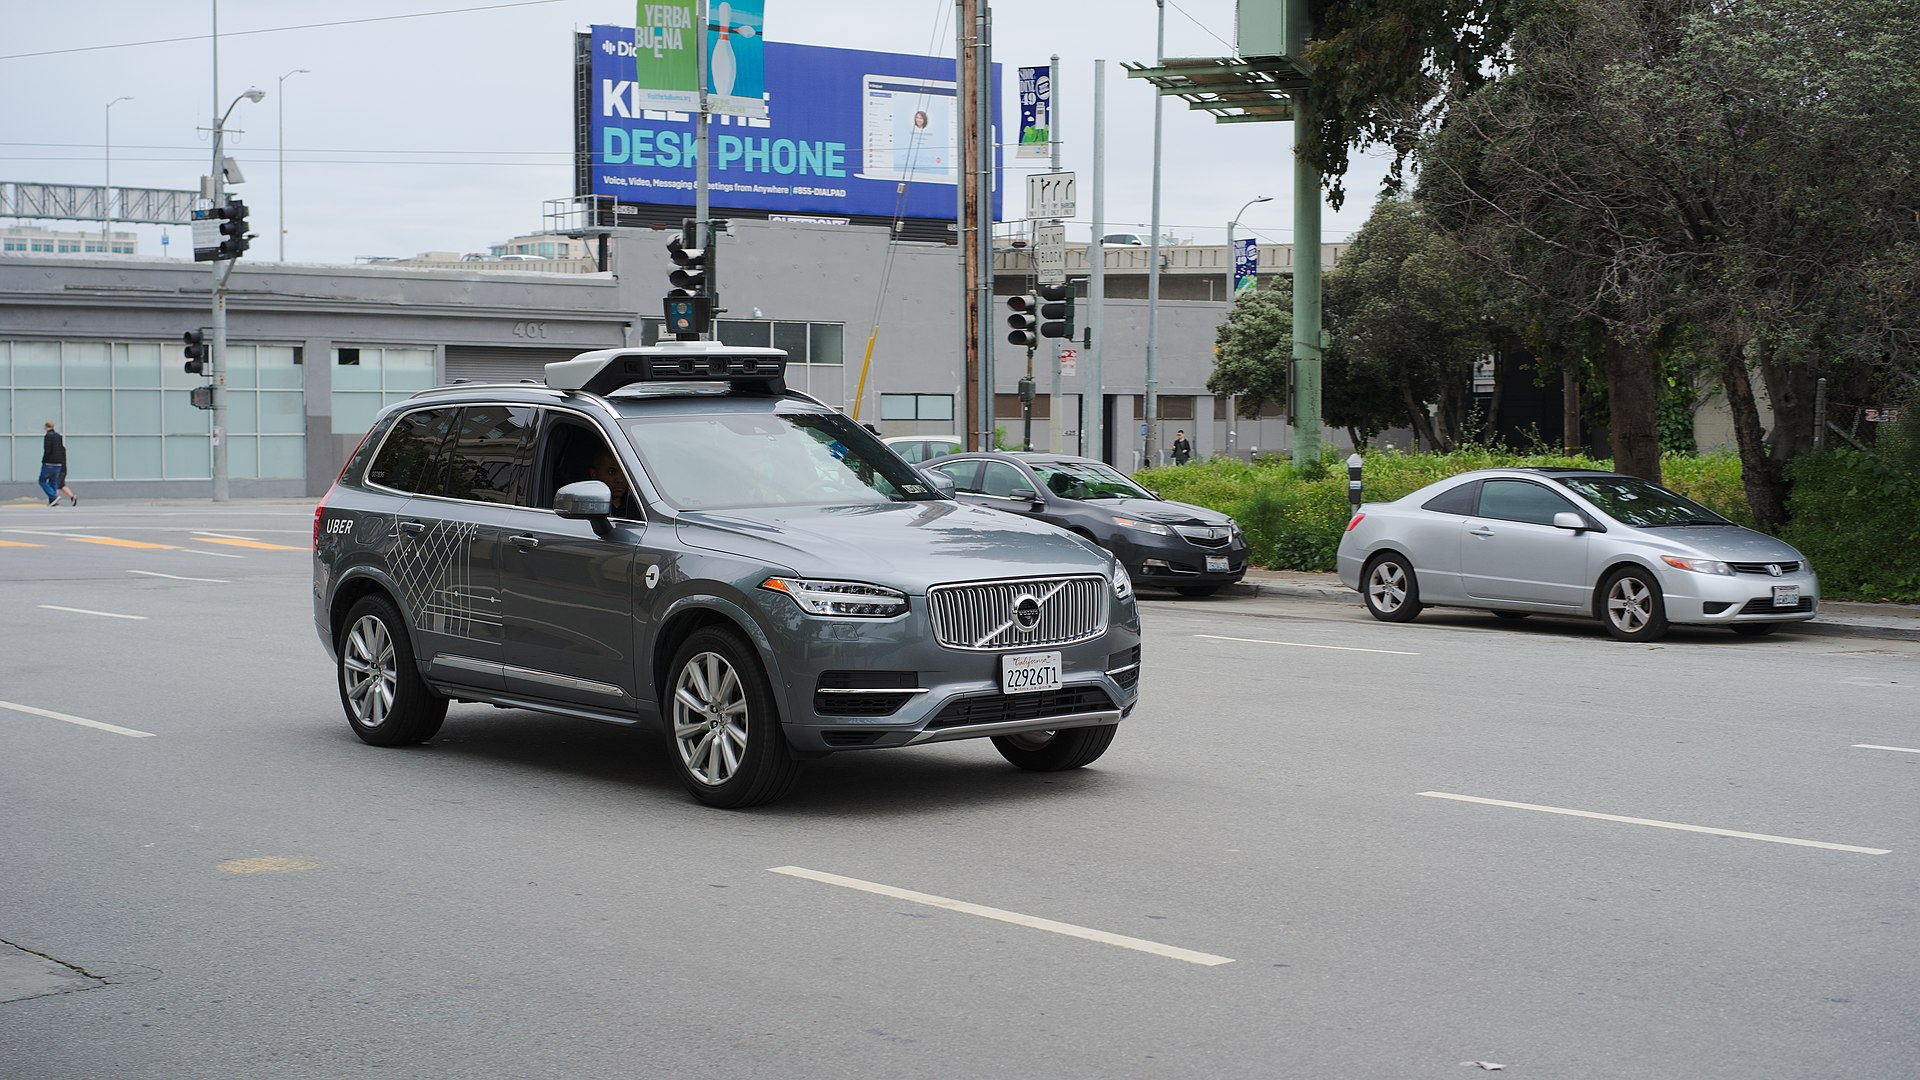 Uber Self Driving Volvo at Harrison at 4thjpg